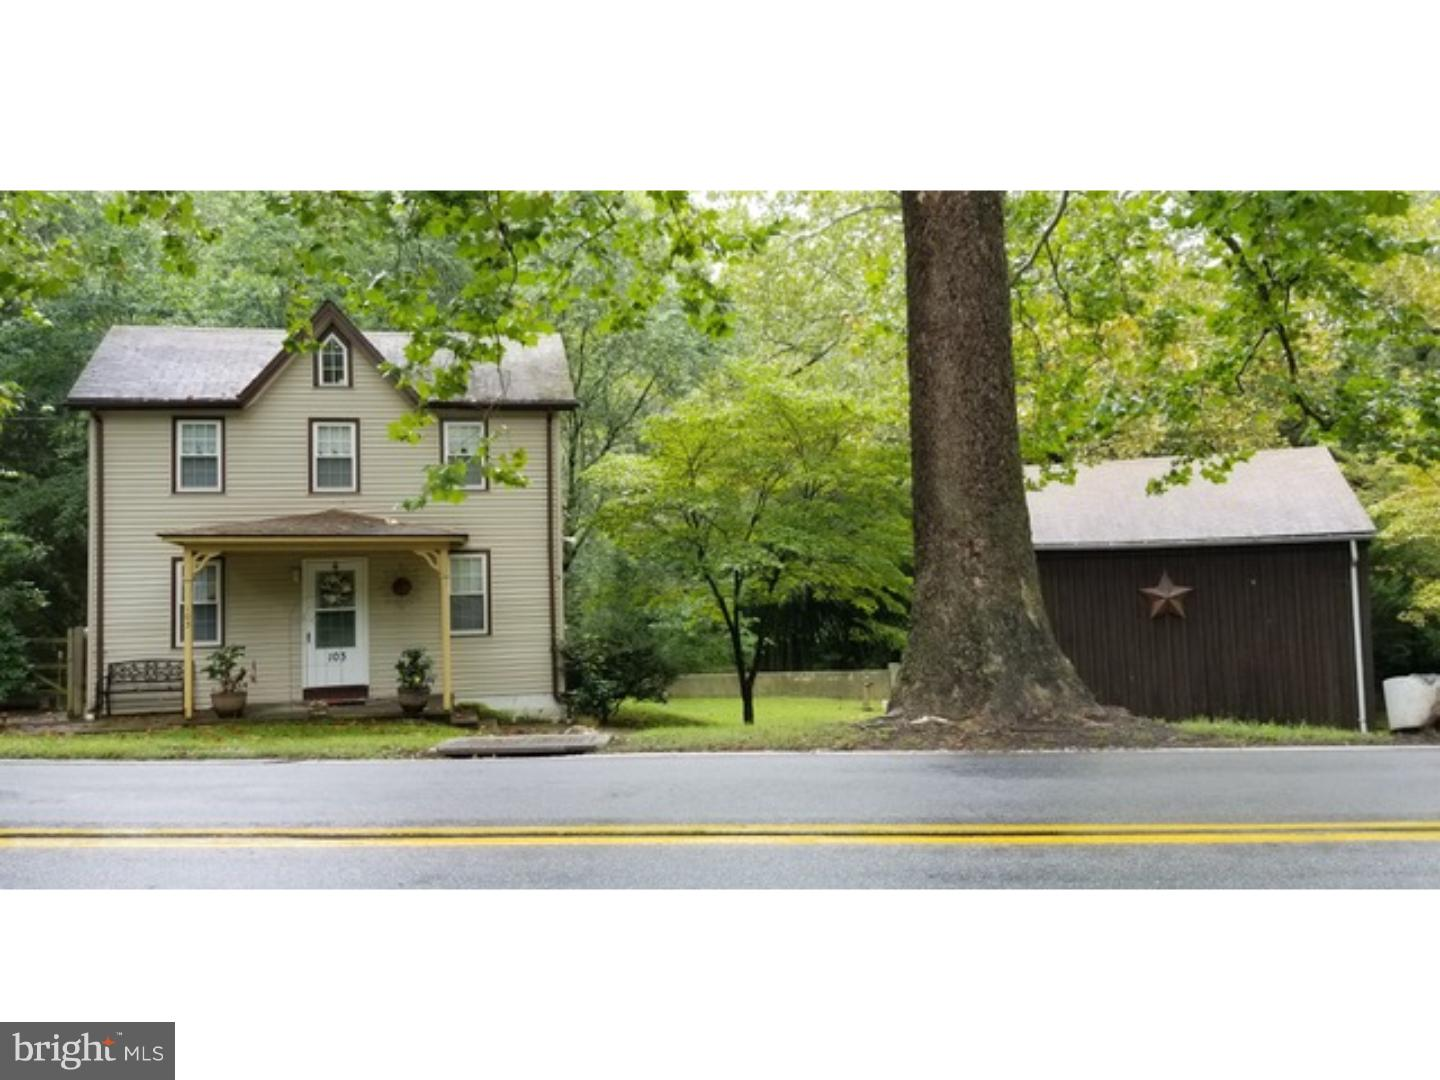 103 VALLEYBROOK ROAD, GLEN MILLS, PA 19342